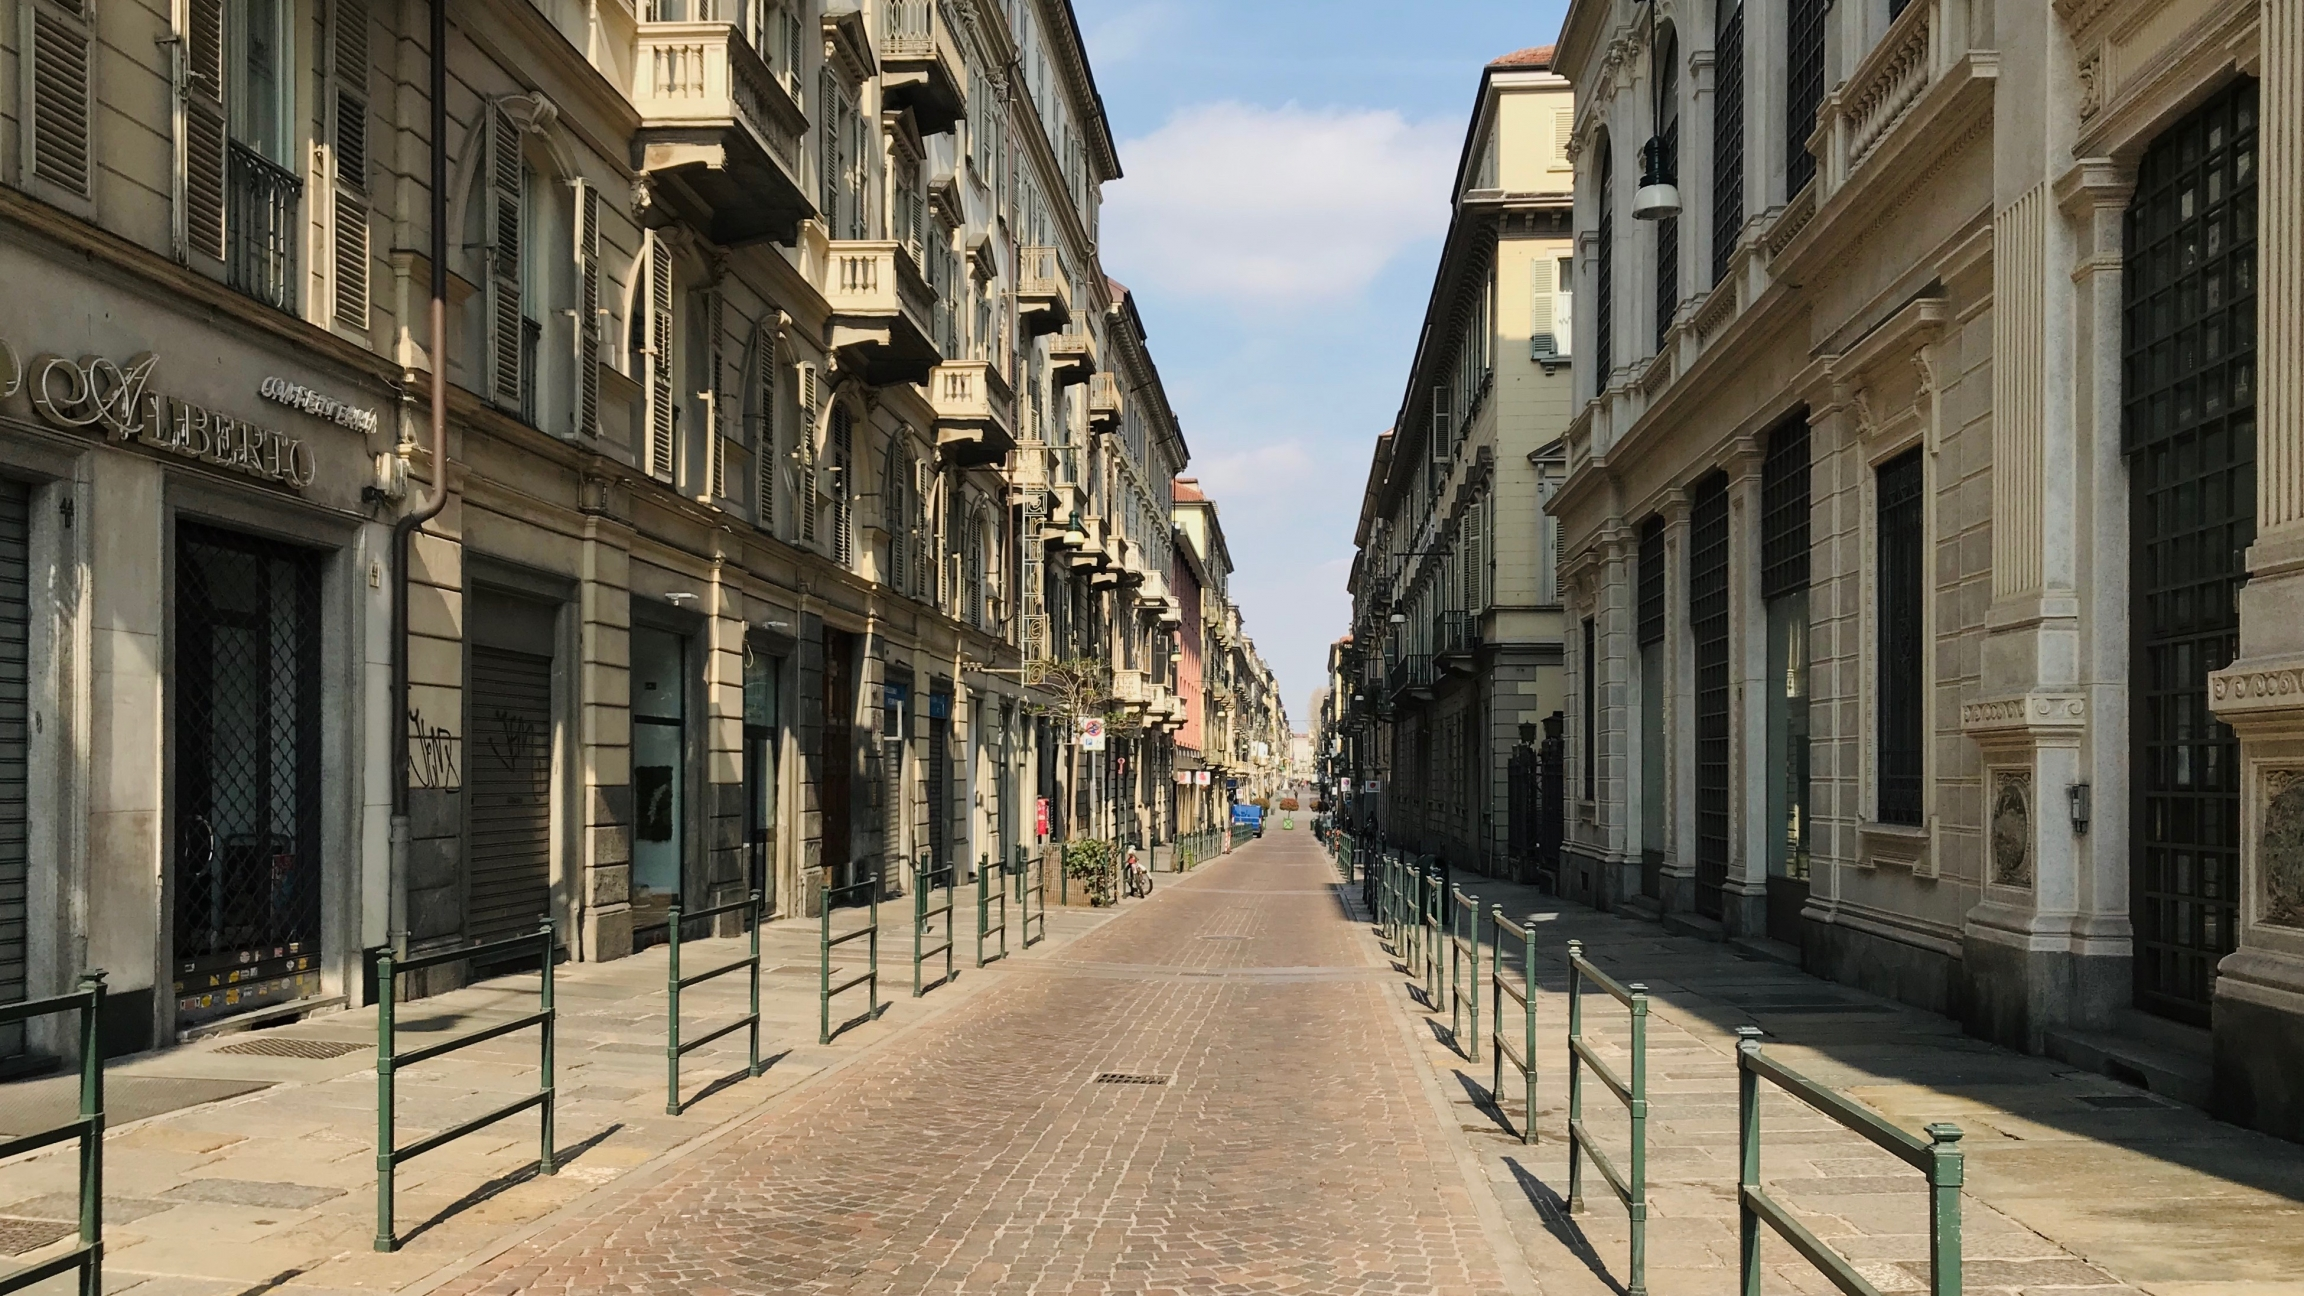 The train station in the Italian city of Turin was empty when reporter Francesca Berardi took a walk through the area last week.